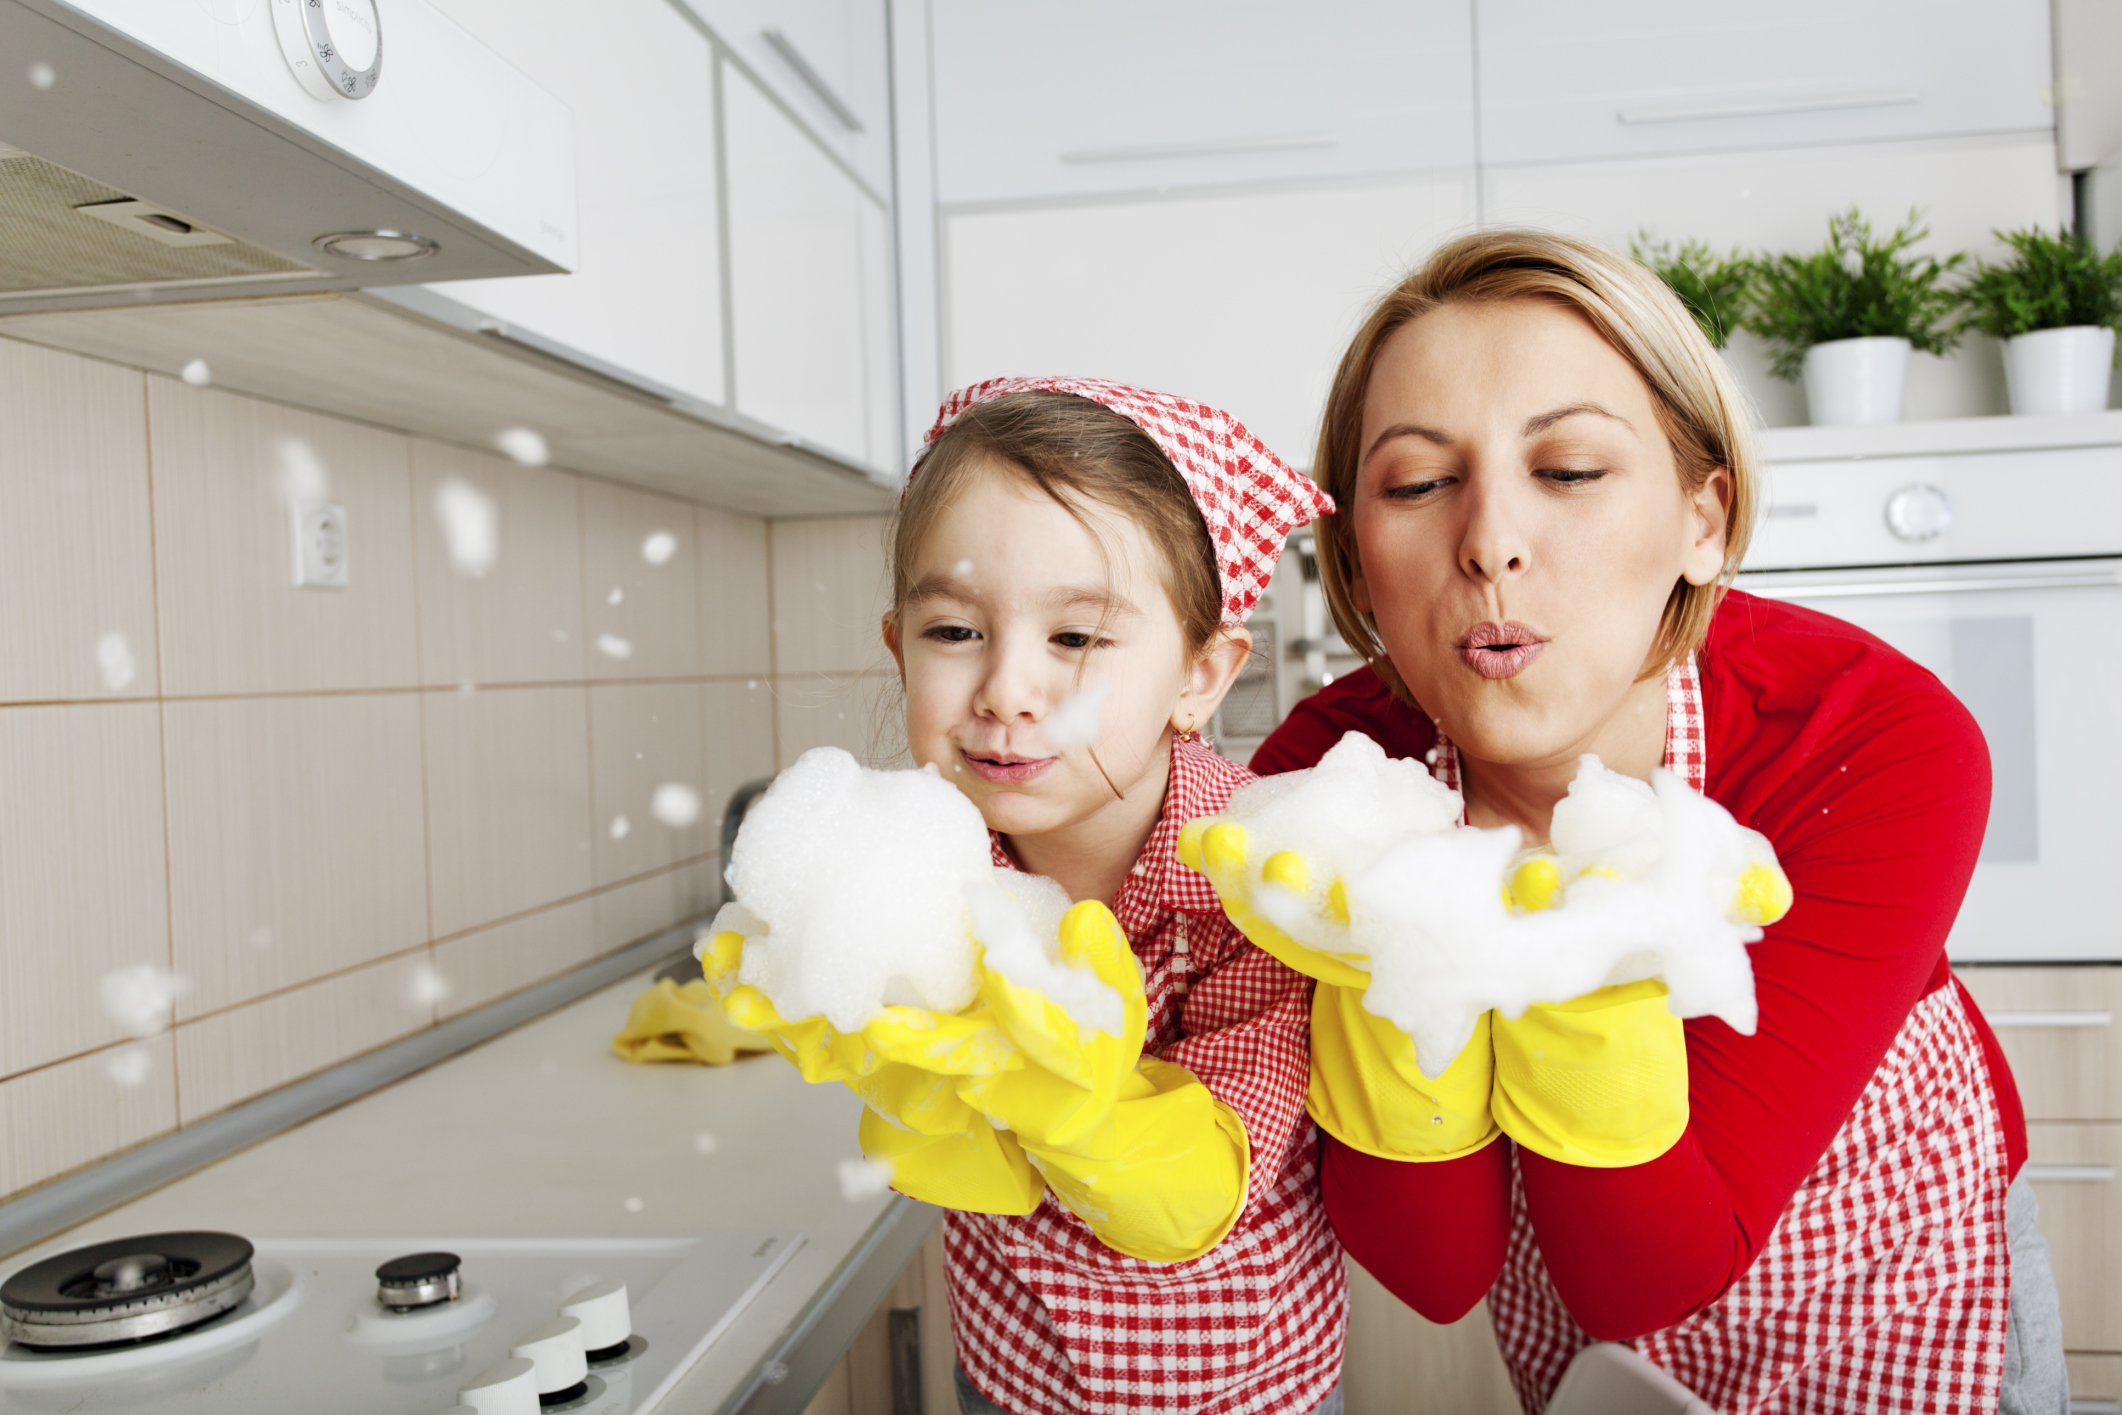 Why Germs are Good for Kids